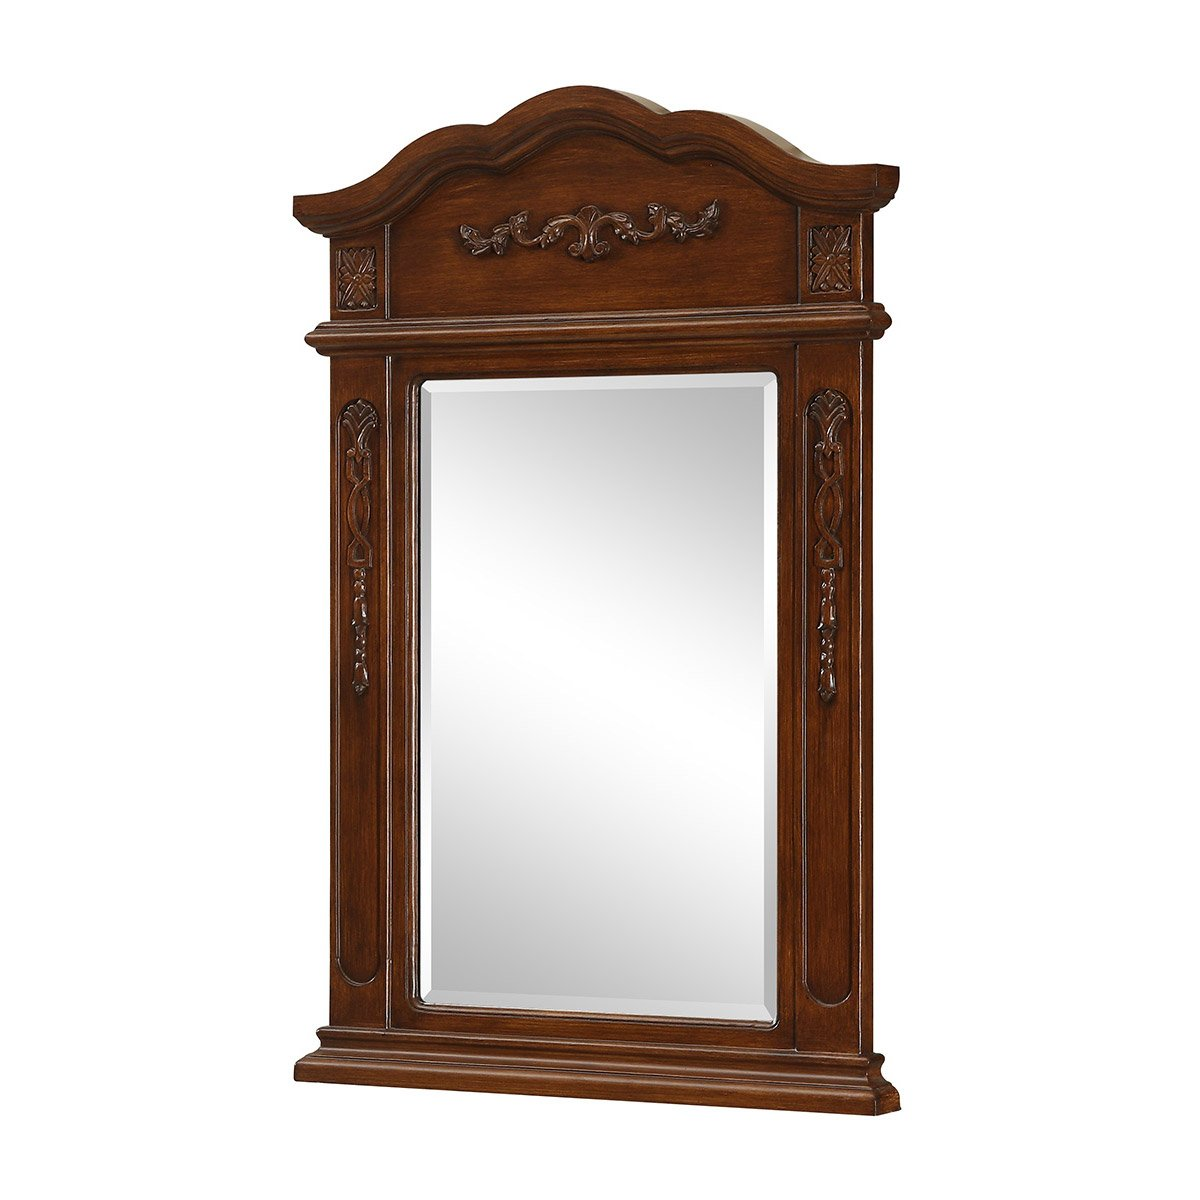 Danville 24 X 36 Traditional Mirror - Brown Finish (Vm-1005) Mirror